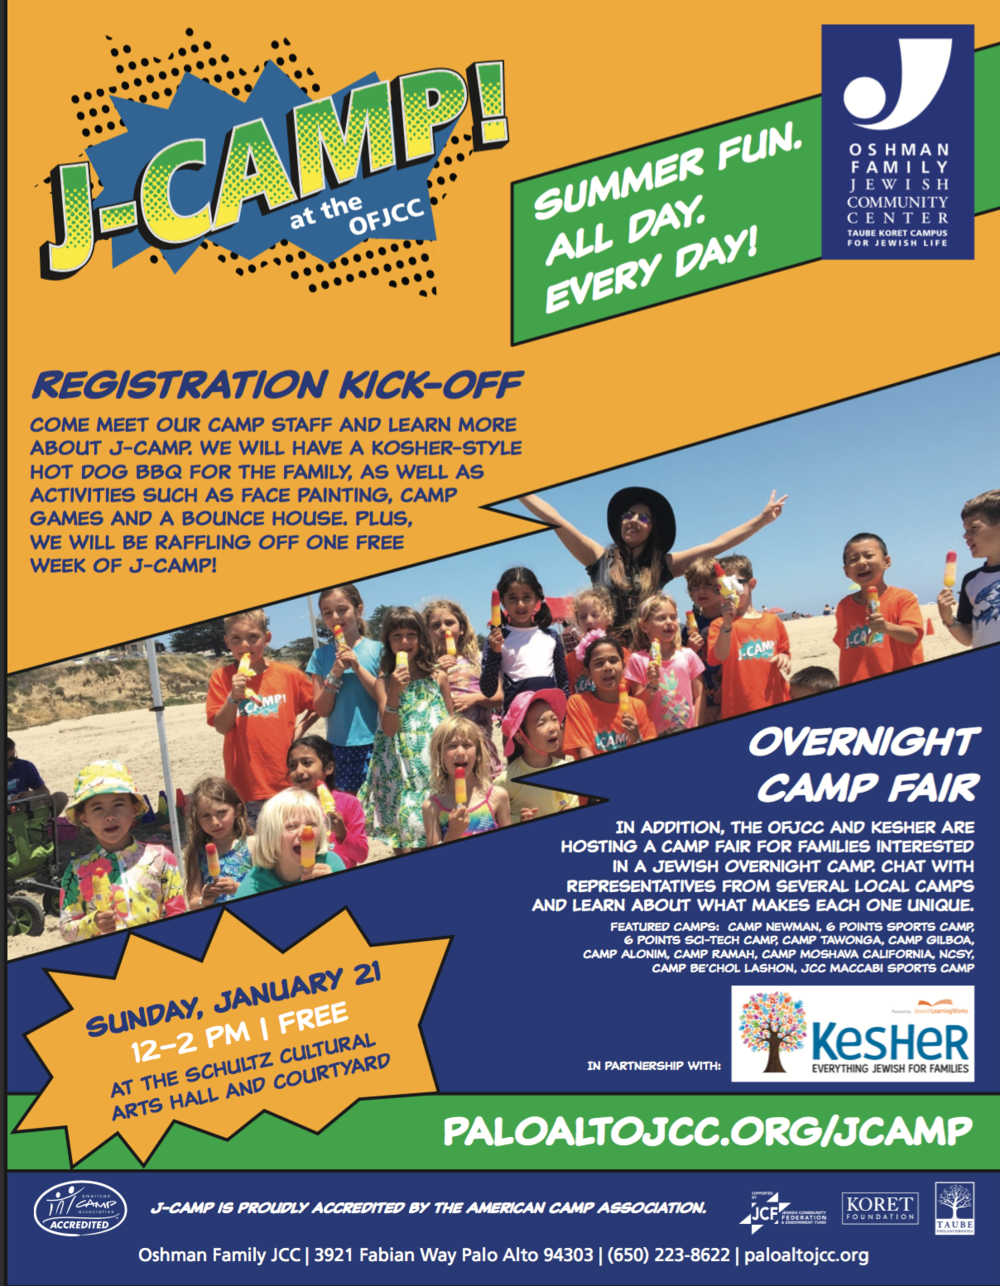 Overnight camps fair flyer 2018.png